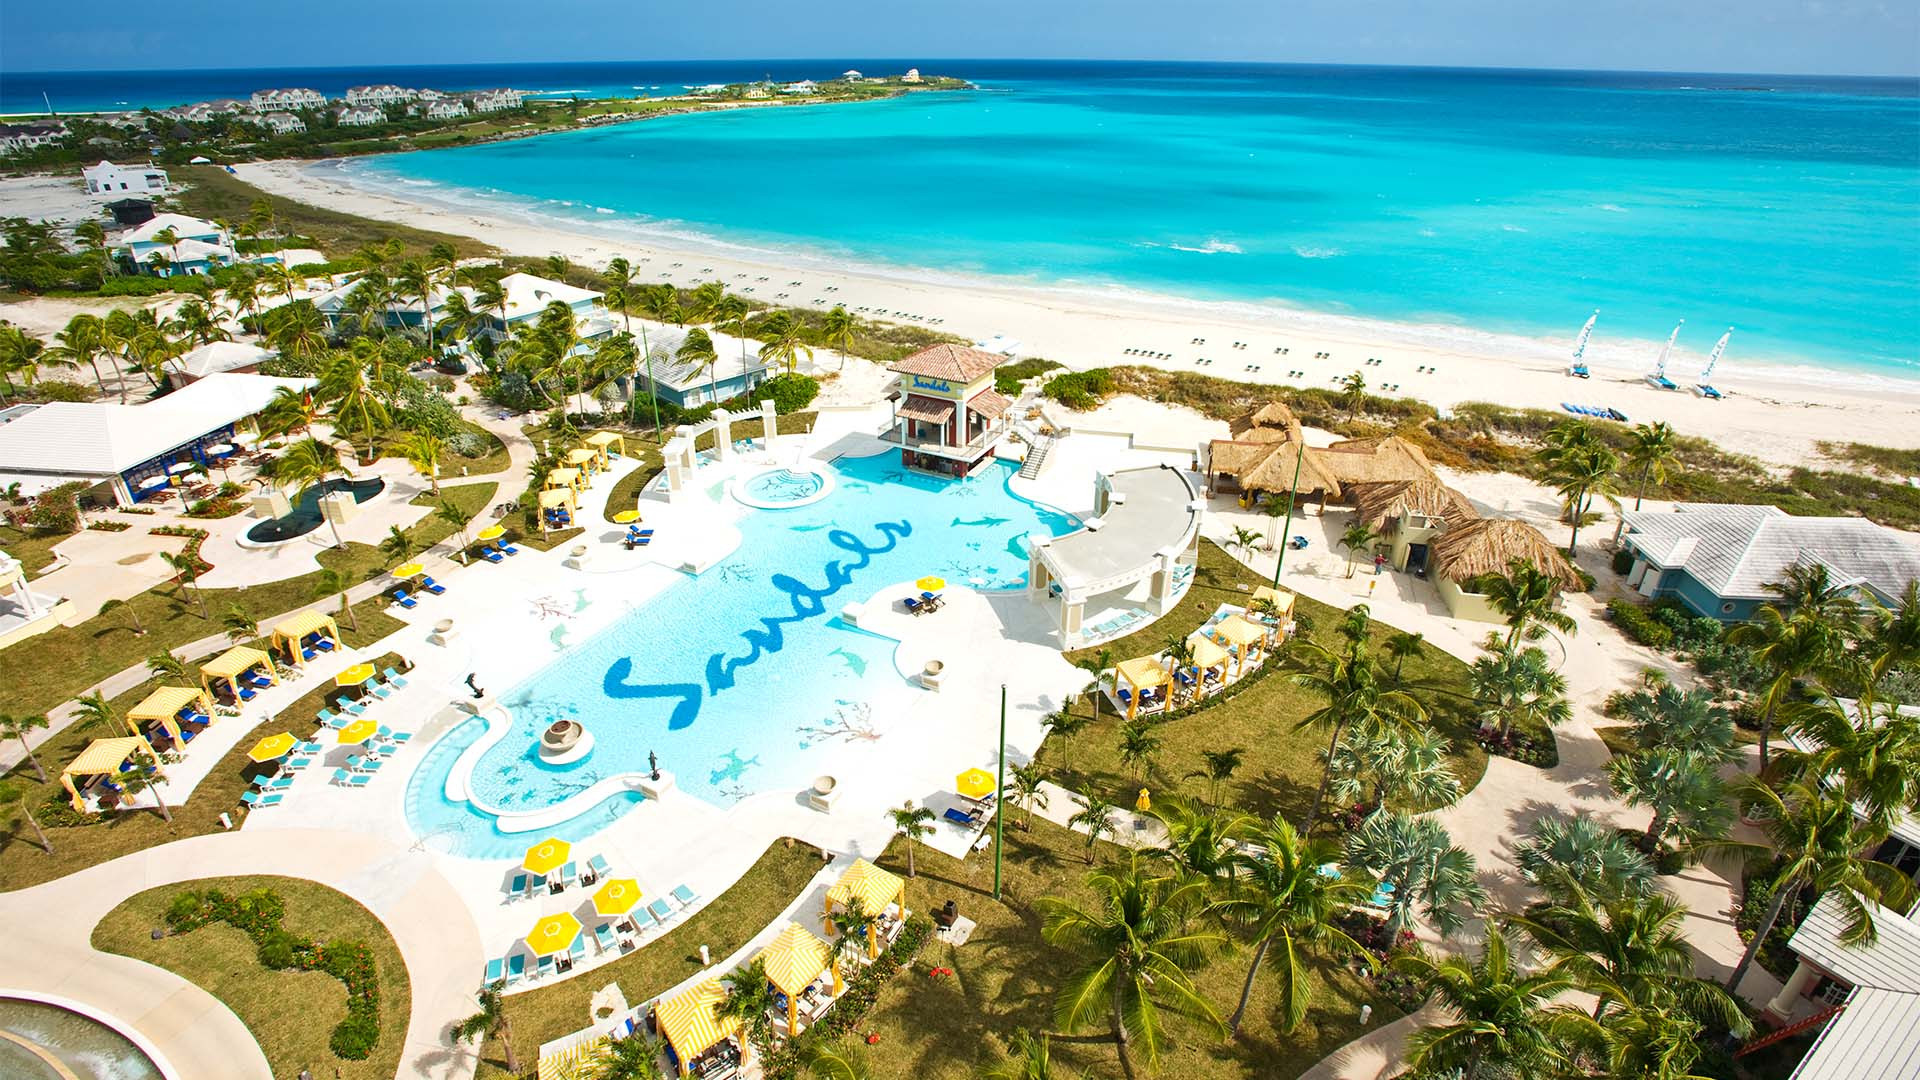 The Sandals Emerald Bay resort in The Bahamas